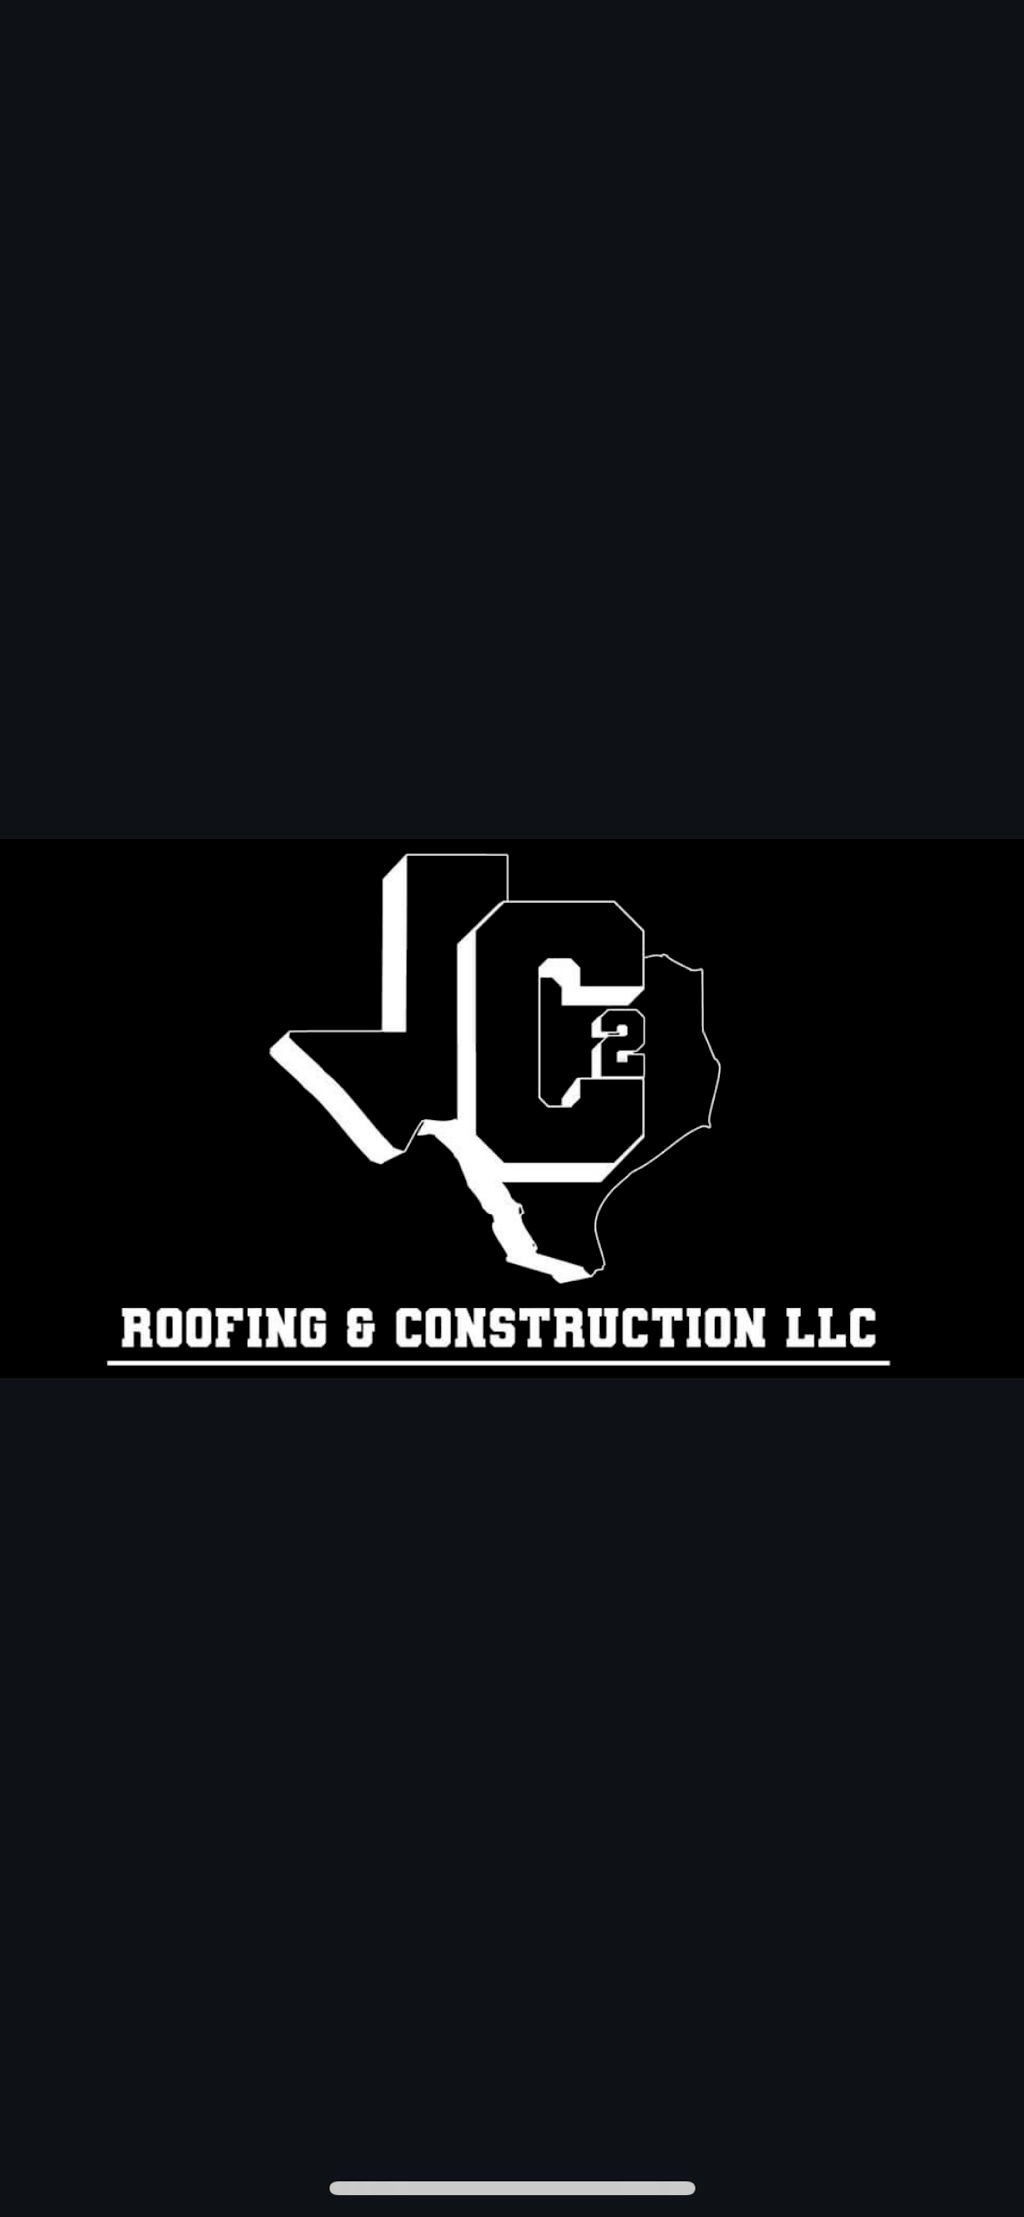 C2 Roofing and Construction LLC